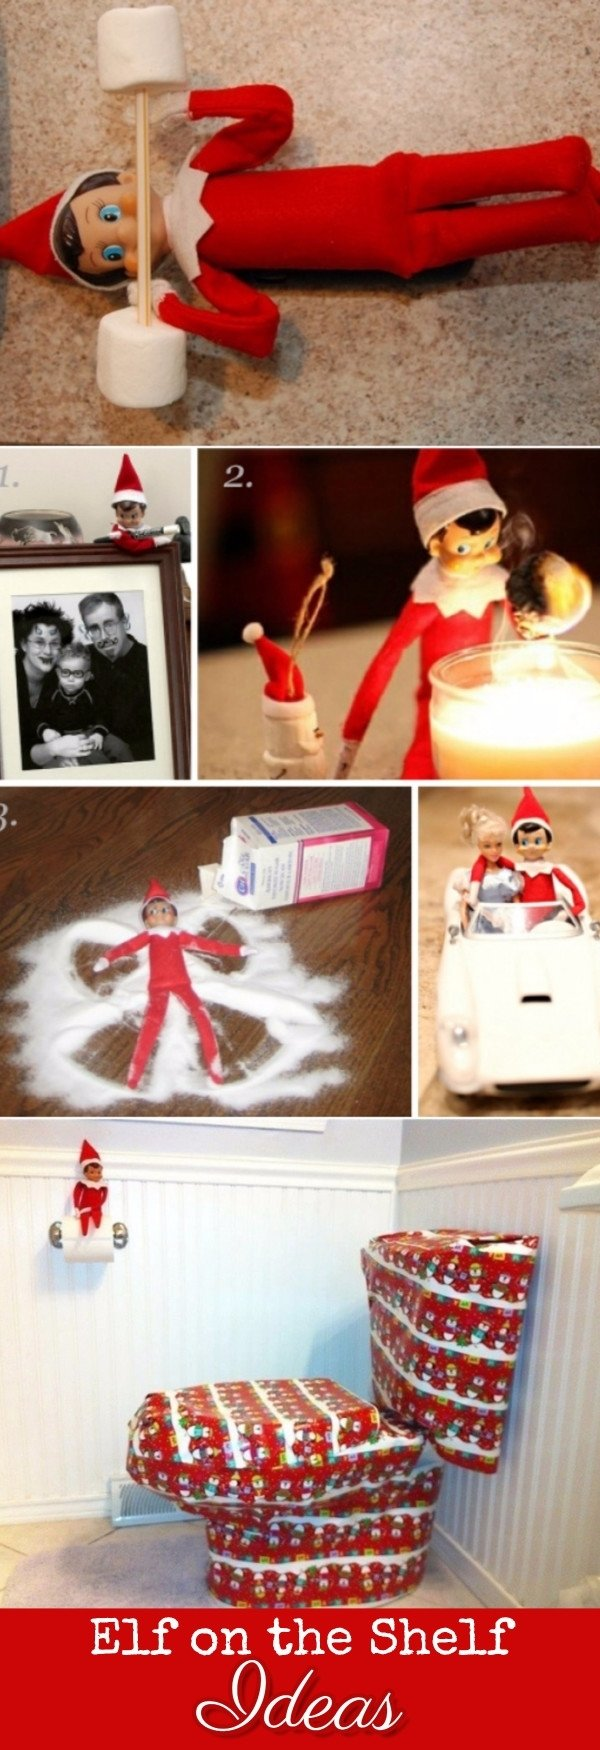 10 Fashionable What Is Elf On The Shelf Ideas 10 elf on the shelf ideas for christmas 2017 crazy elf such pranks 2 2020